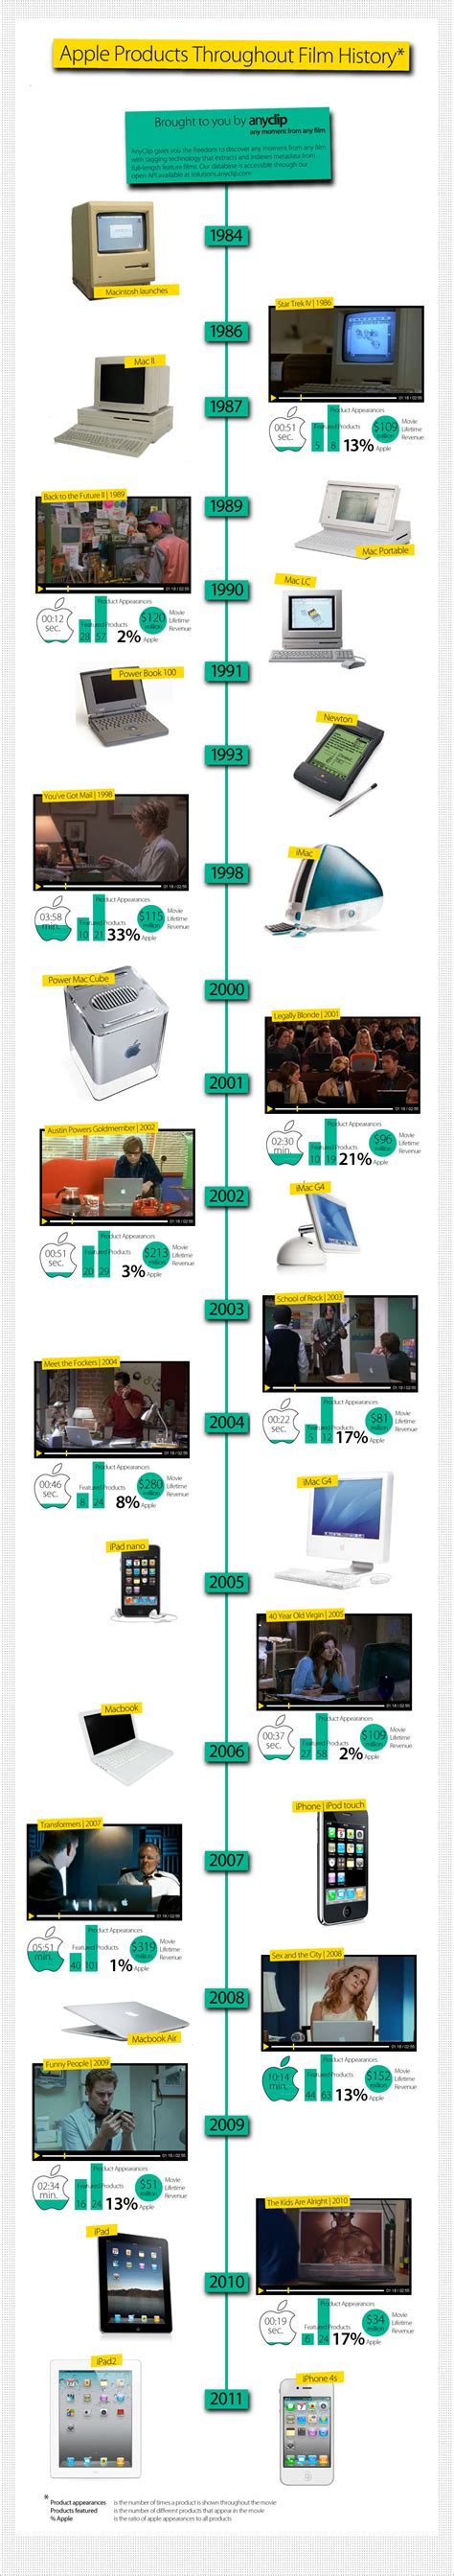 apple history apple in movies time on screen historic timeline